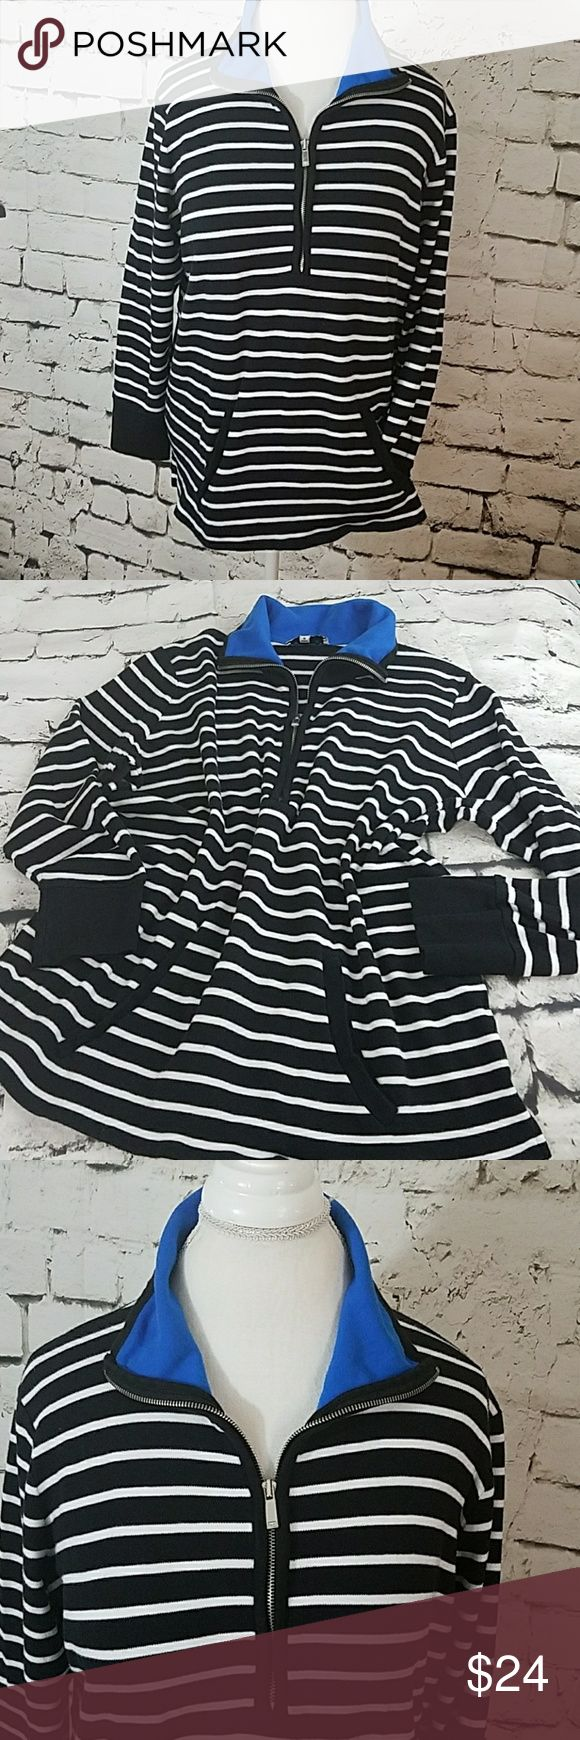 "Jones New York black and white sweatshirt SZ 1X Jones New York sport woman  black and white sweatshirt SZ 1X. This black and white striped sweatshirt has a kangaroo pouch front pocket, solid black cuffs, a blue collar on the inside zipper down halfway is in very good condition great way it's not too heavy it's not too light, has 2in side slits for hip comfort.100% cotton. Measures from armpit to armpit  23"" , from top of shoulder to base of shirt  25.5"" 🌴 Jones New York Tops Sweatshirts…"